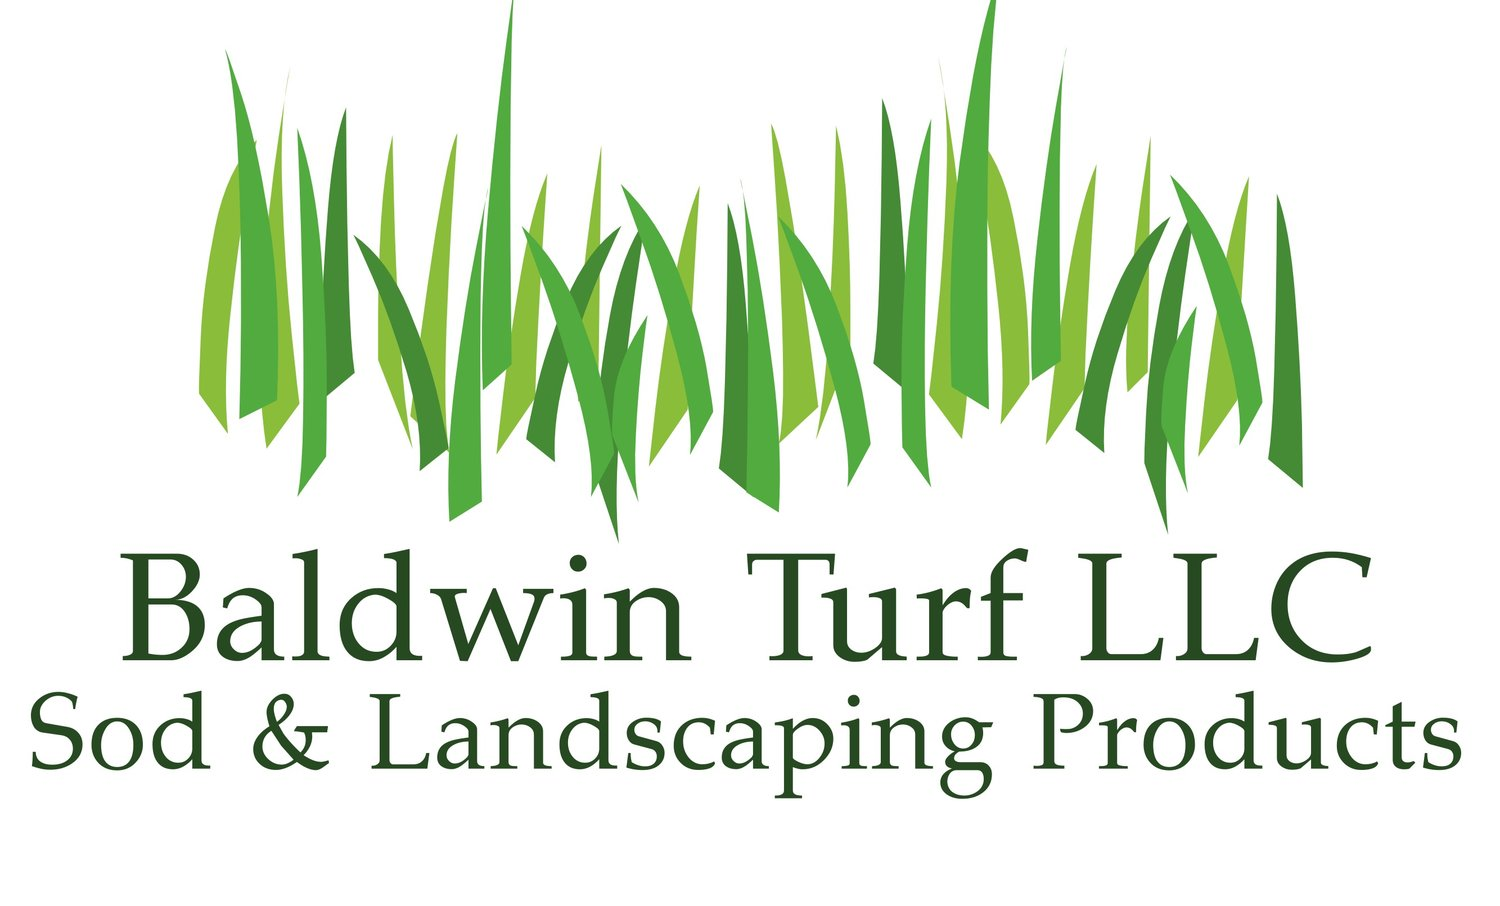 Baldwin Turf, LLC